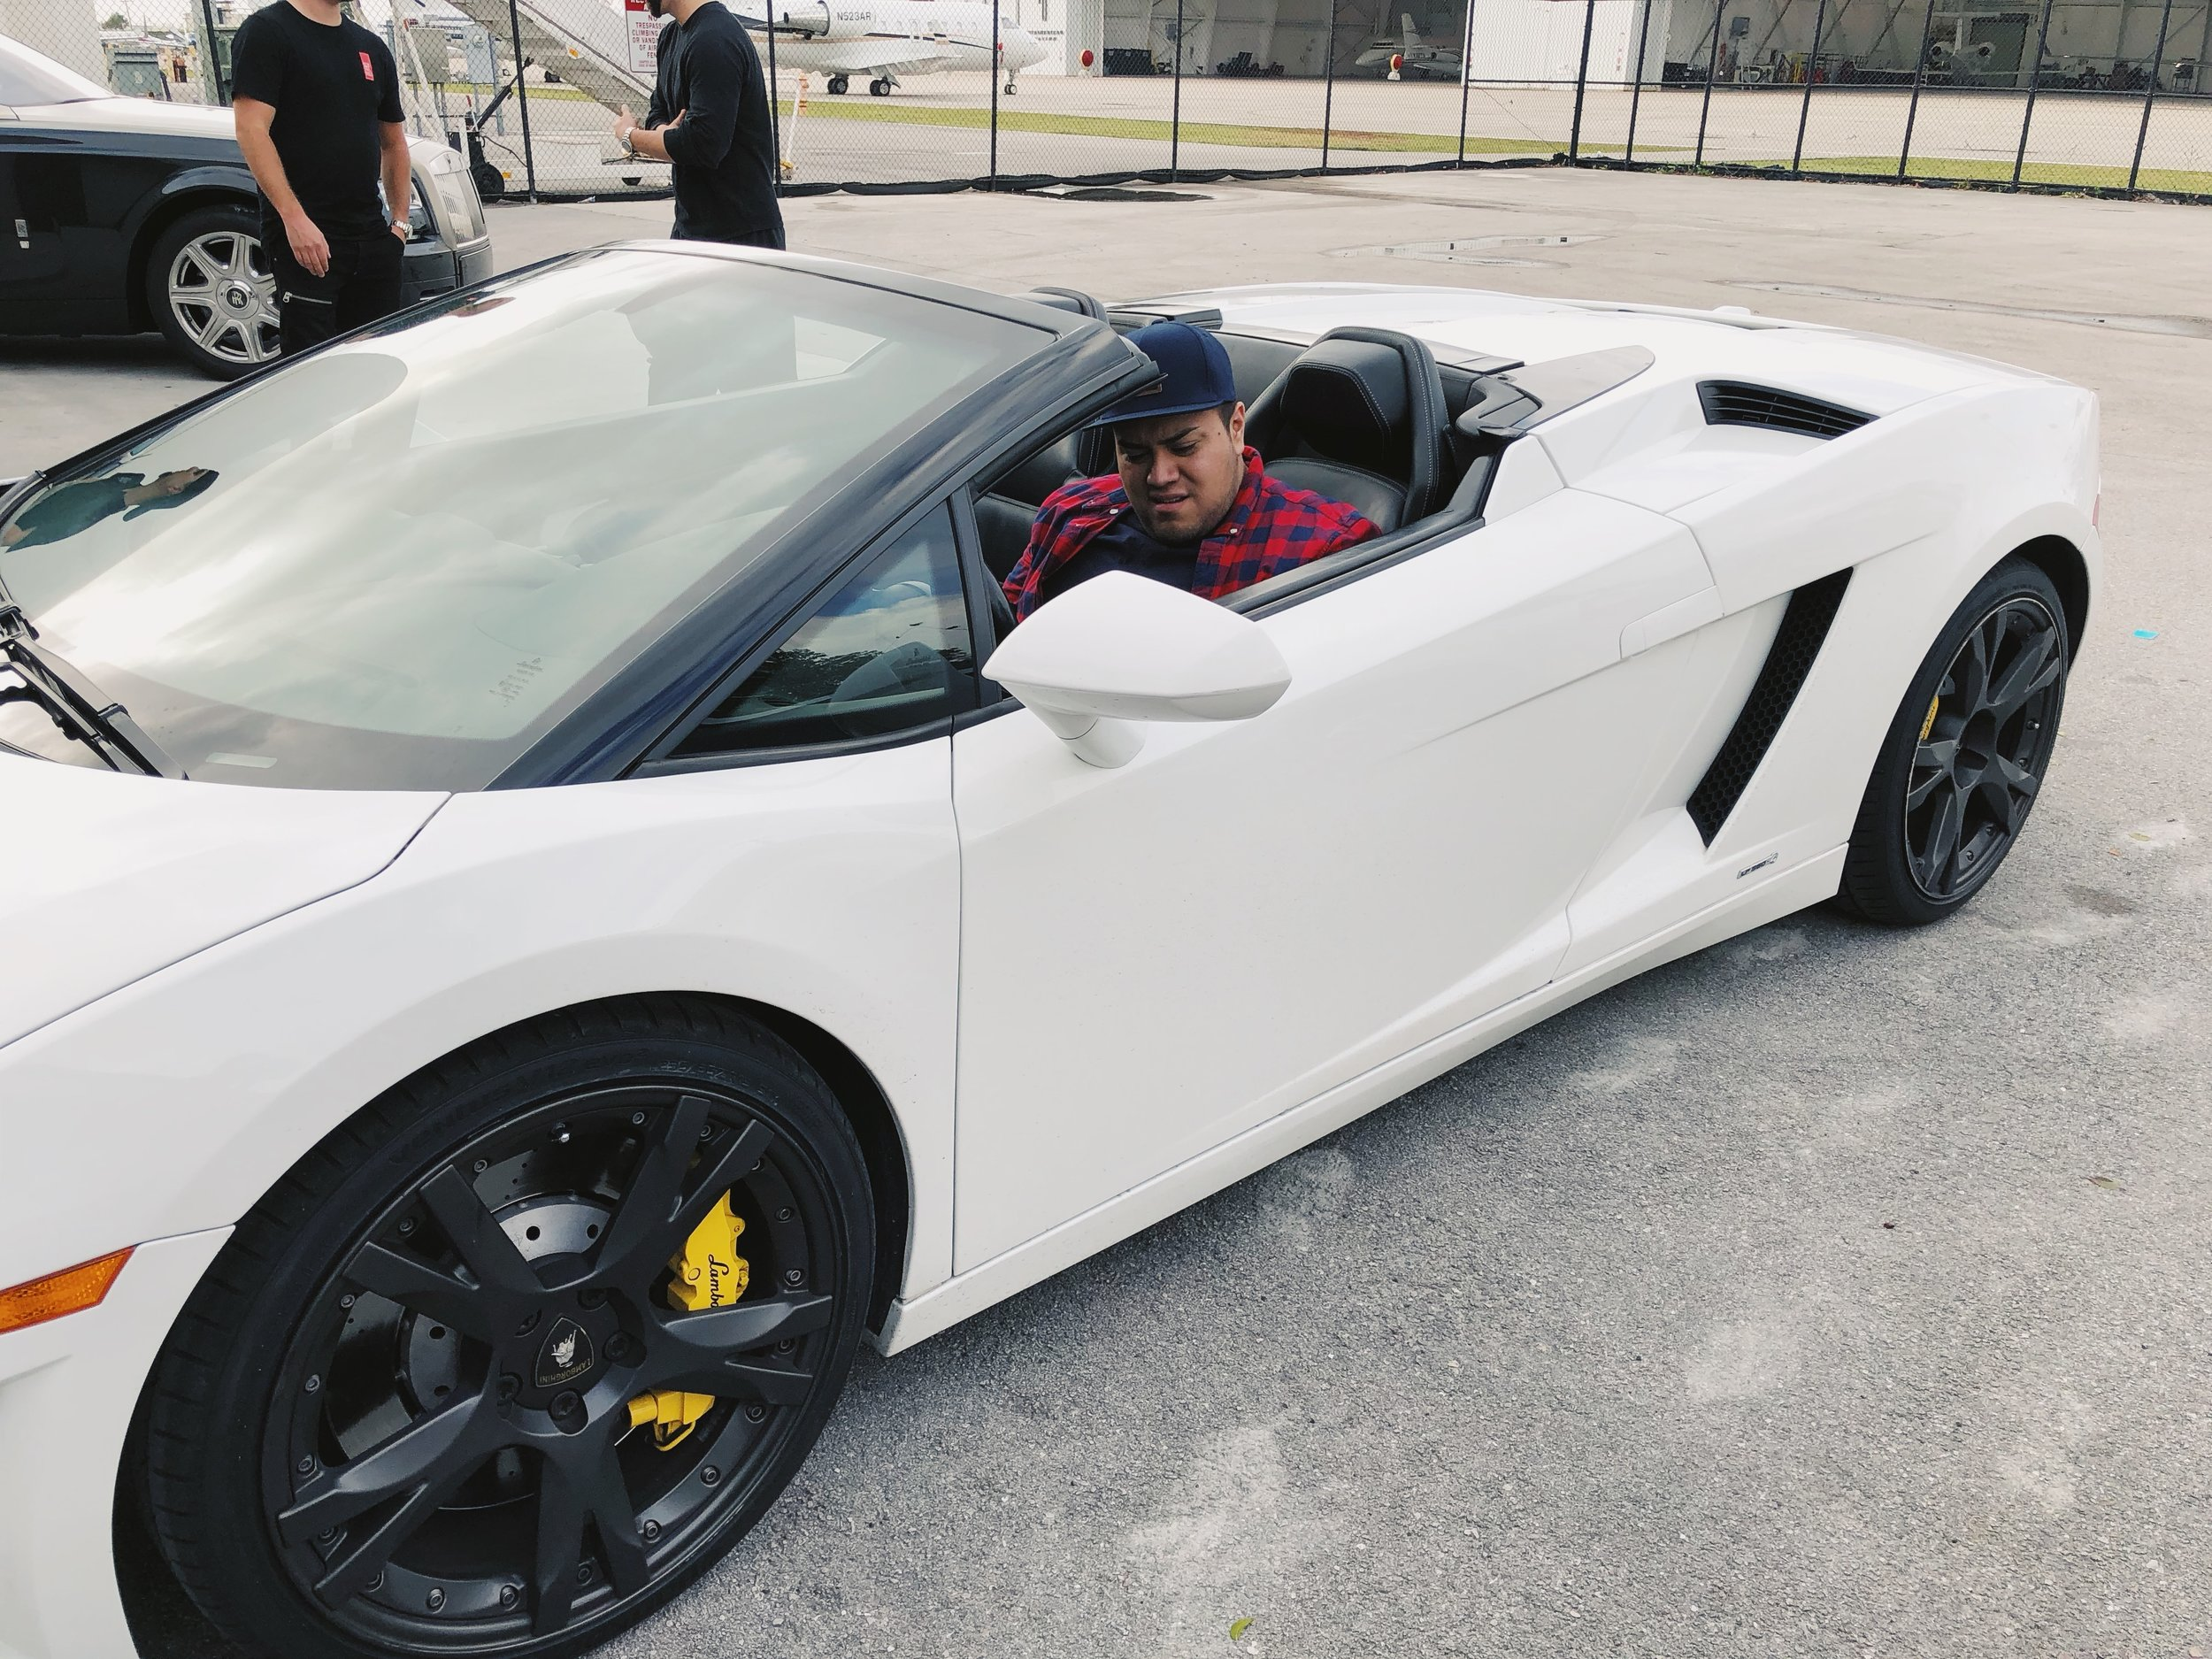 Picking up the Lambo for the Photoshoot